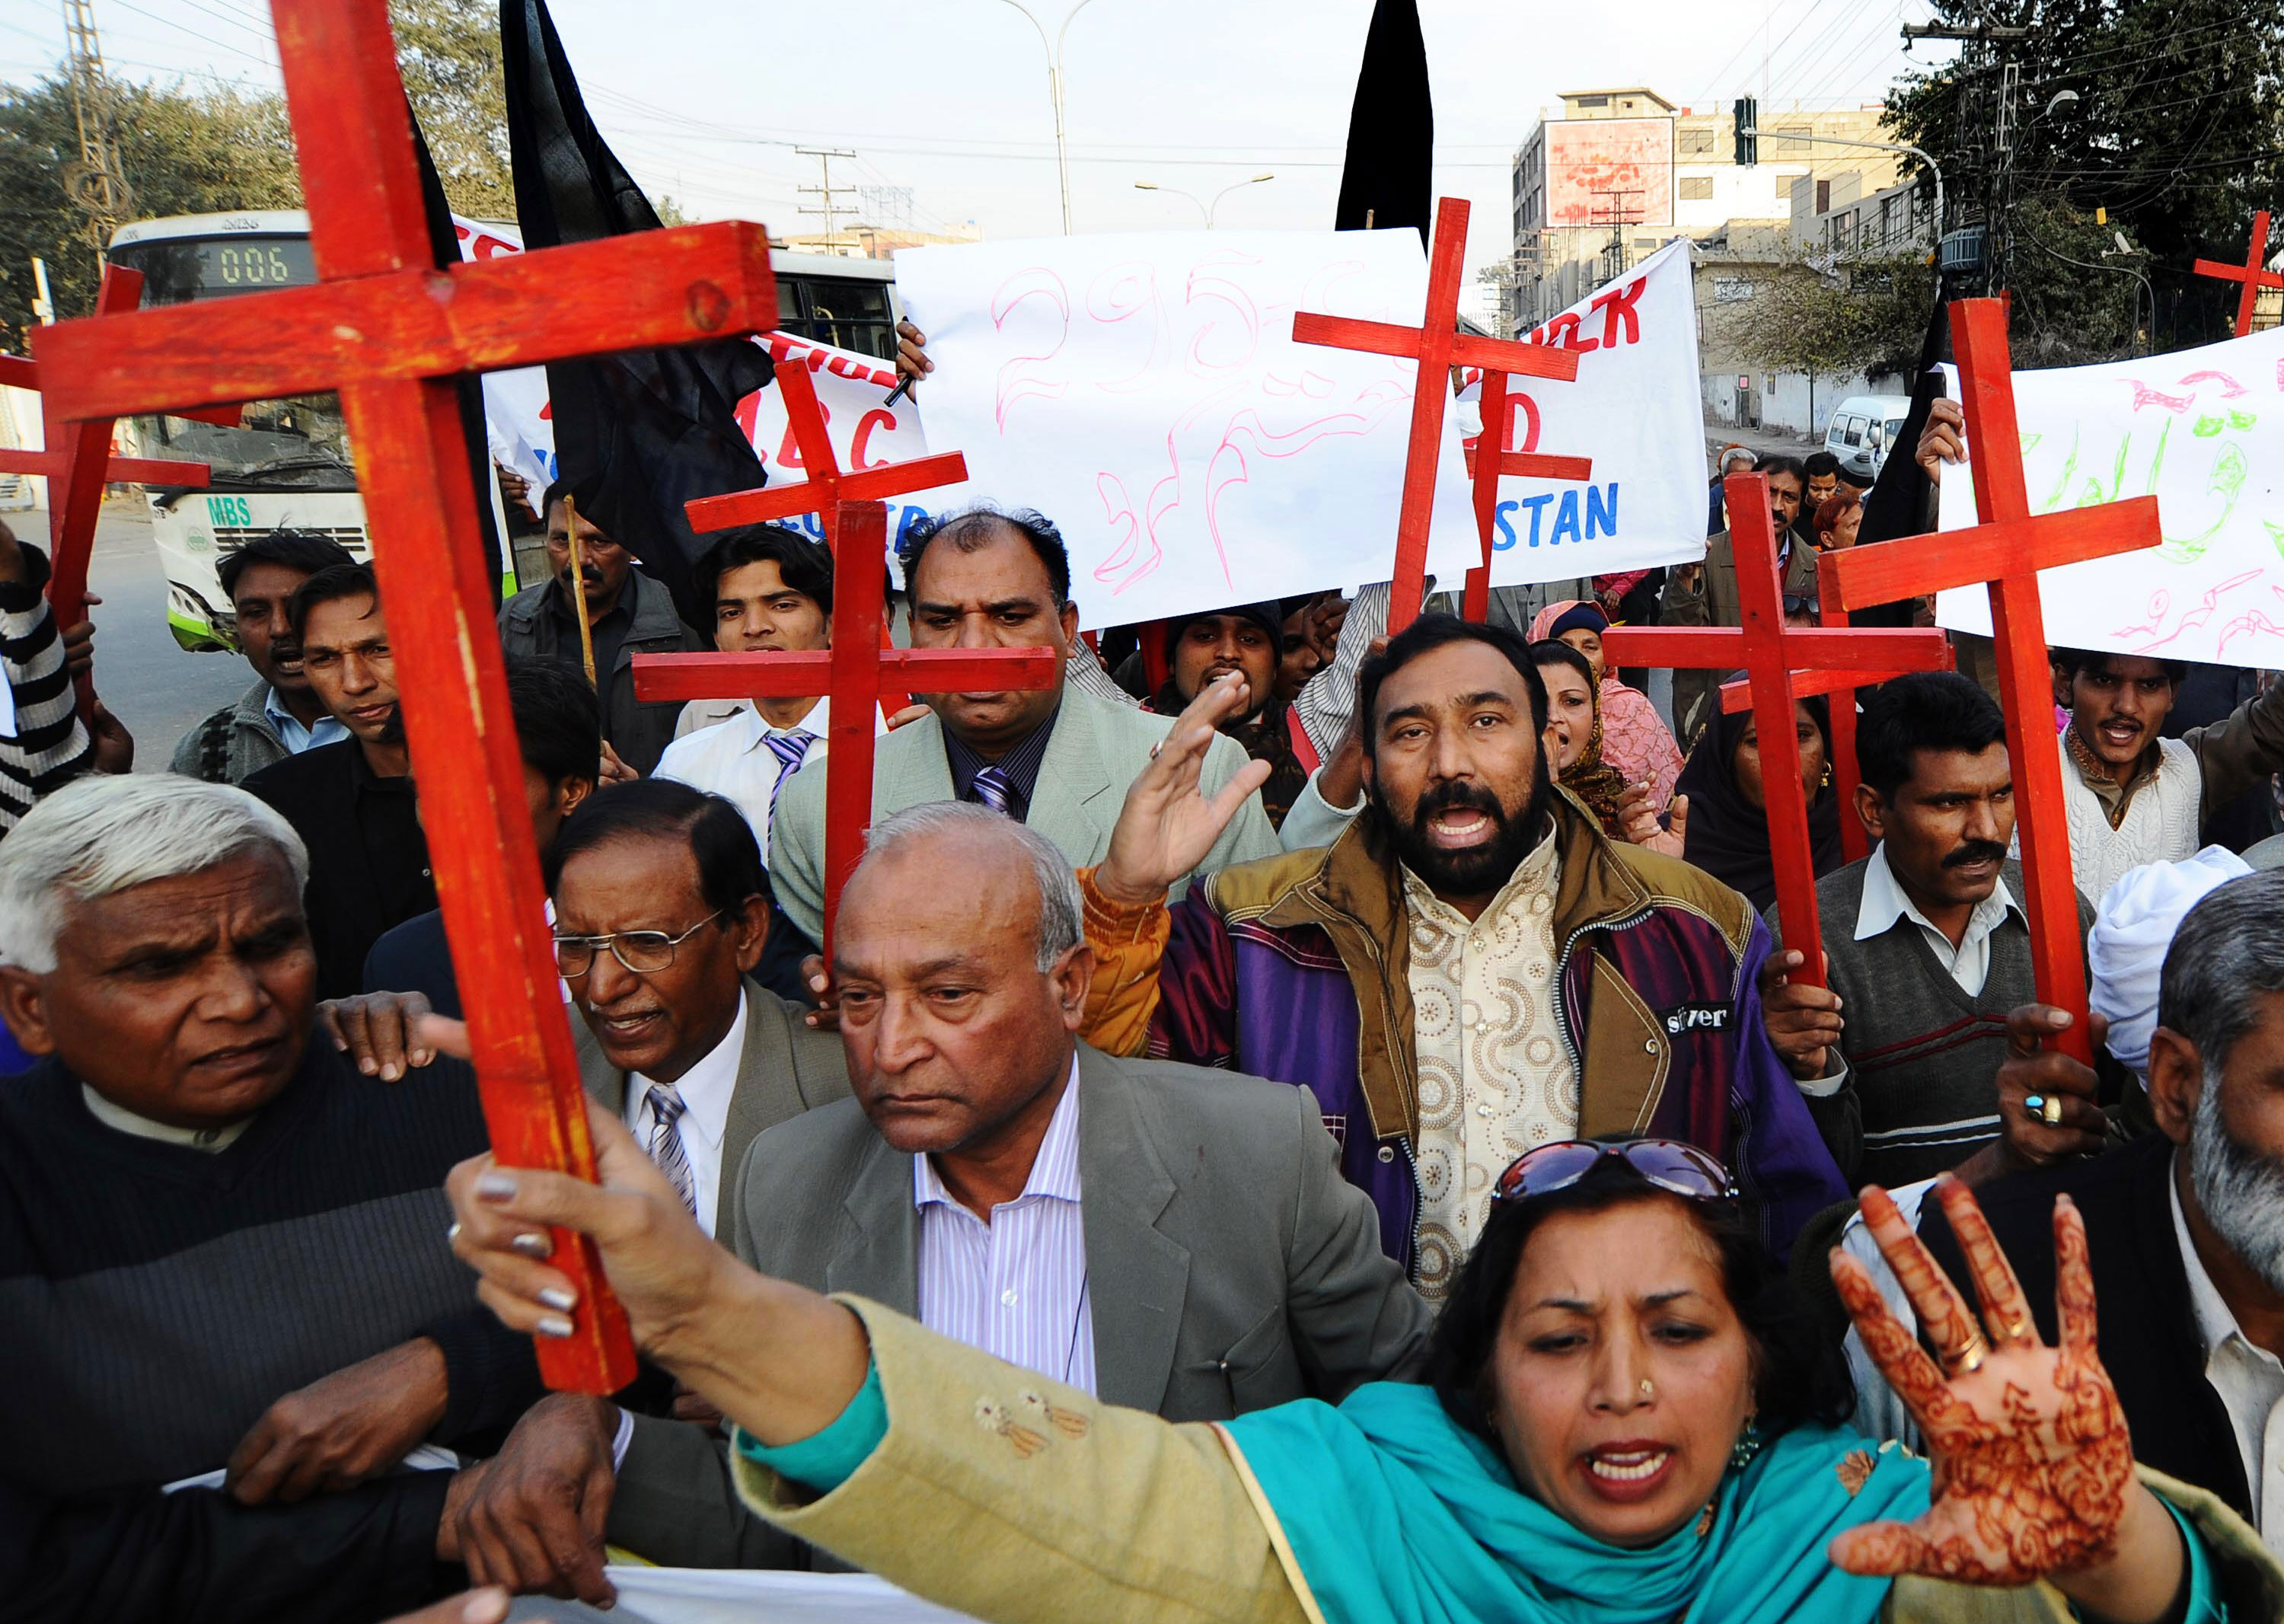 'Religion of peace' to execute Christian woman for 'blasphemy' in Pakistan